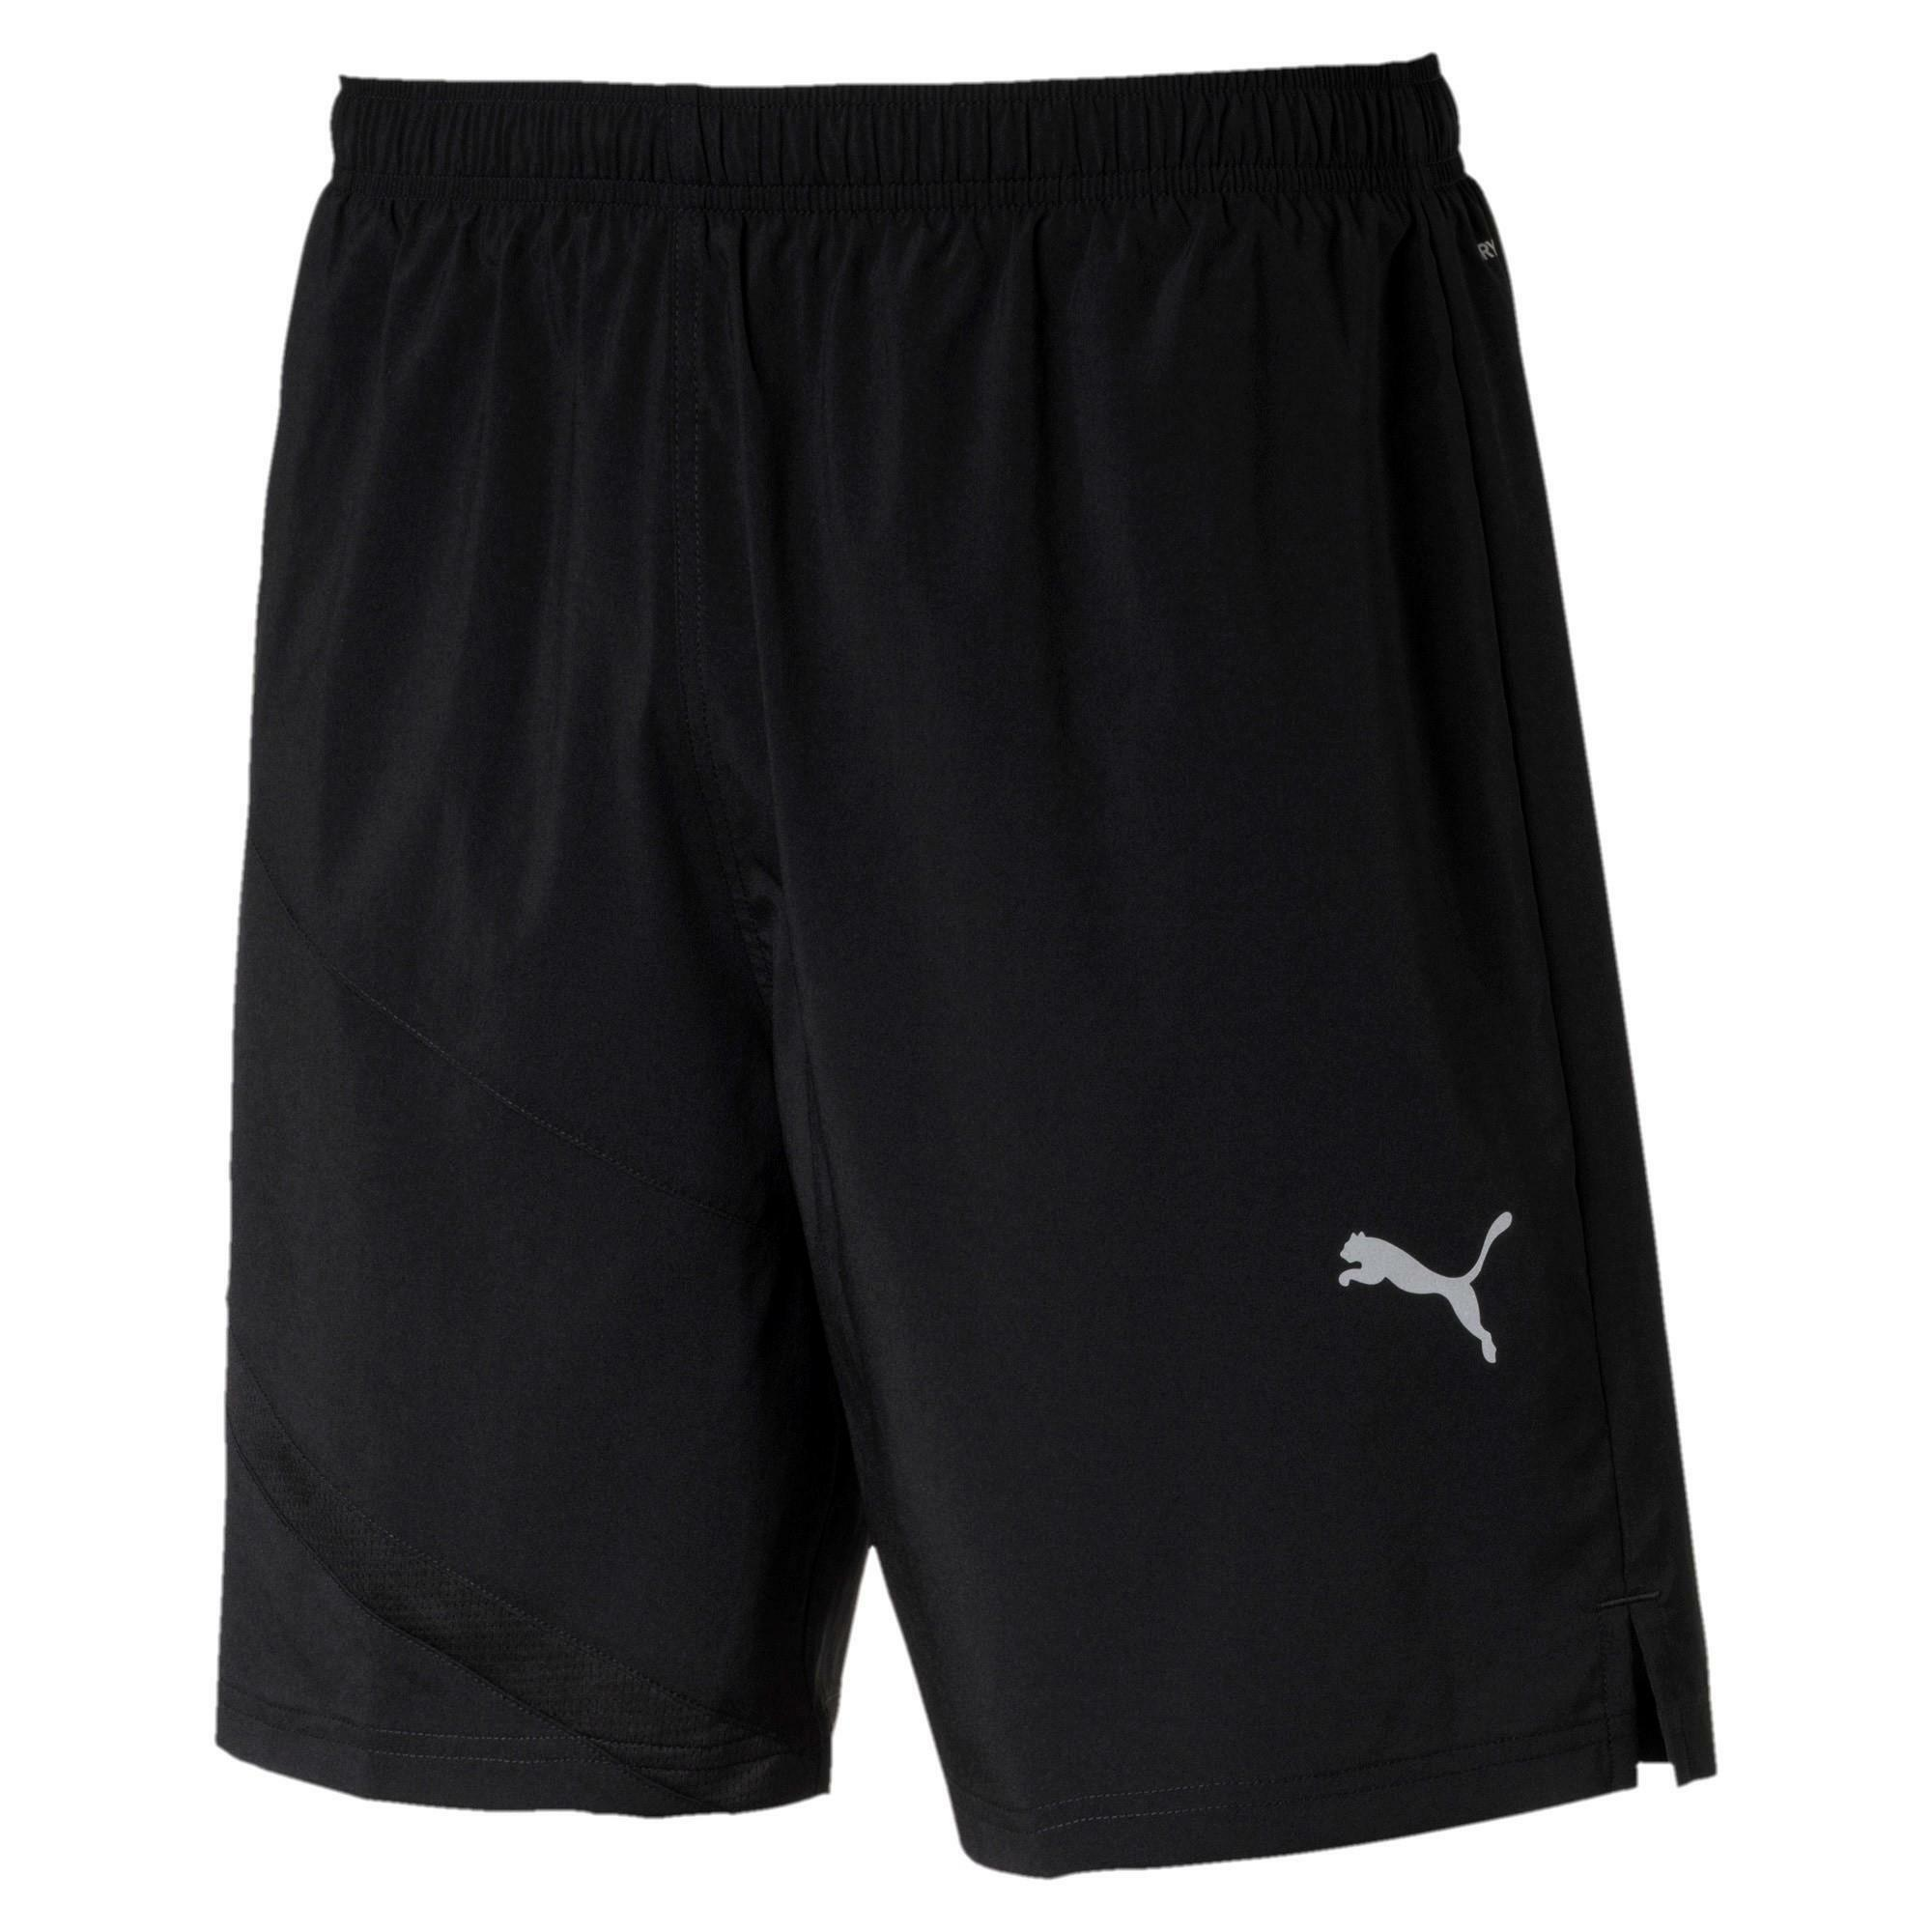 puma puma pantaloncino ignite blocked 7 nero